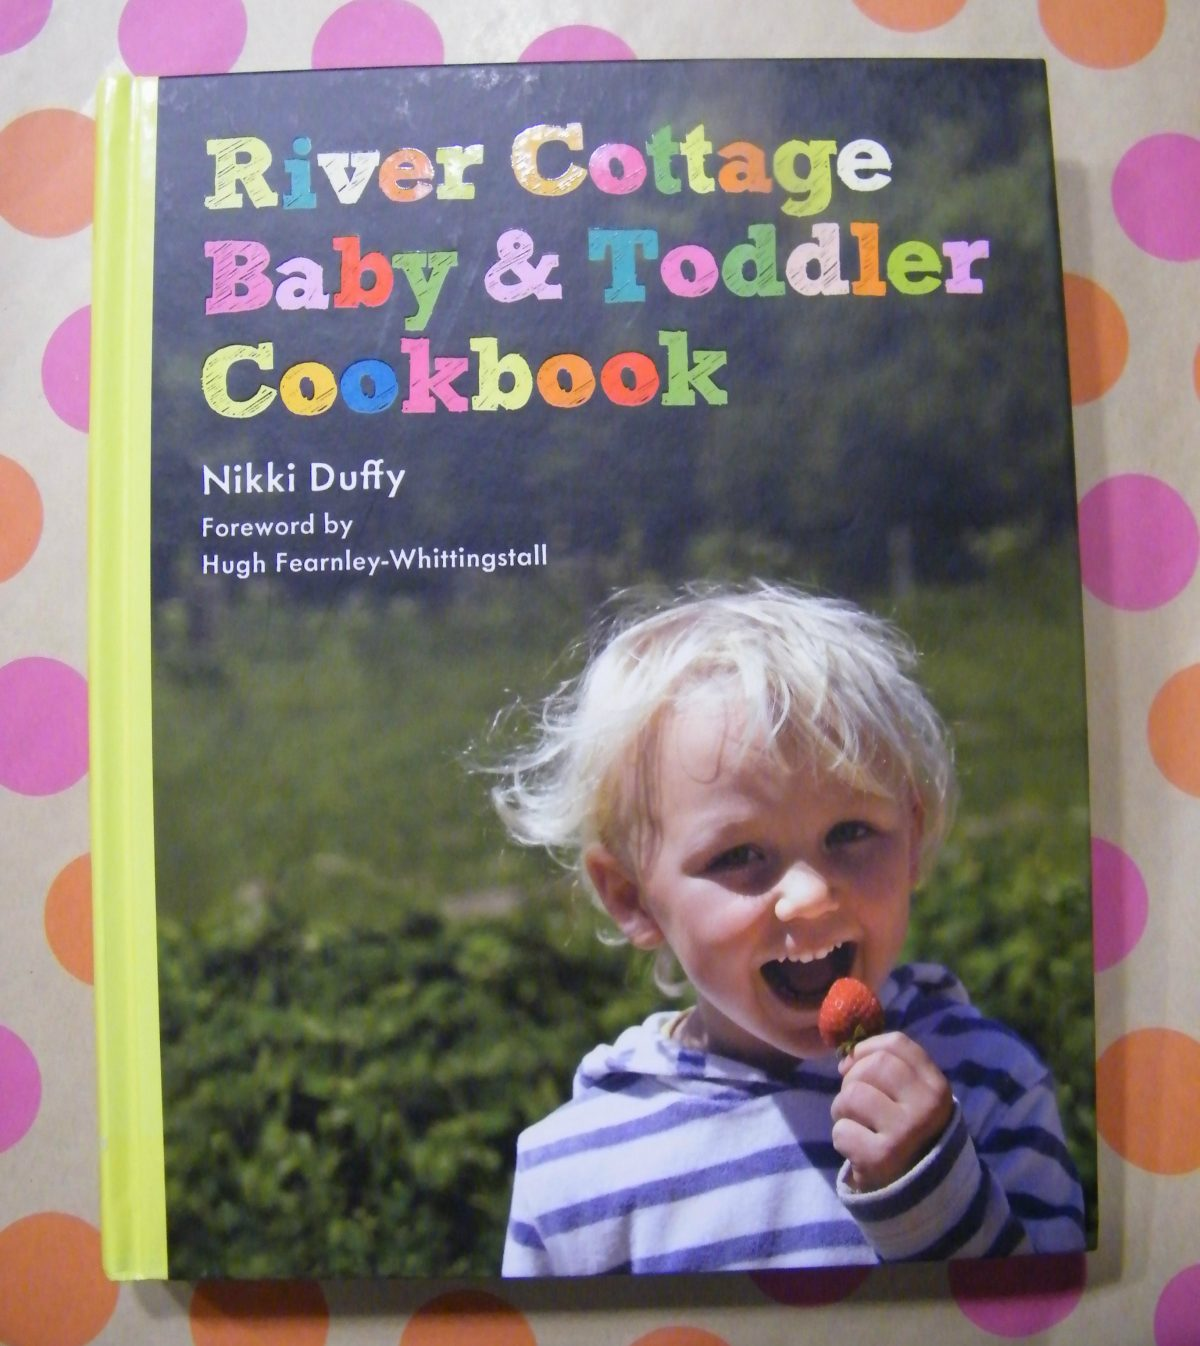 River Cottage Baby& Toddler Cookbook Giveaway! (7/28 US&CAN $35)